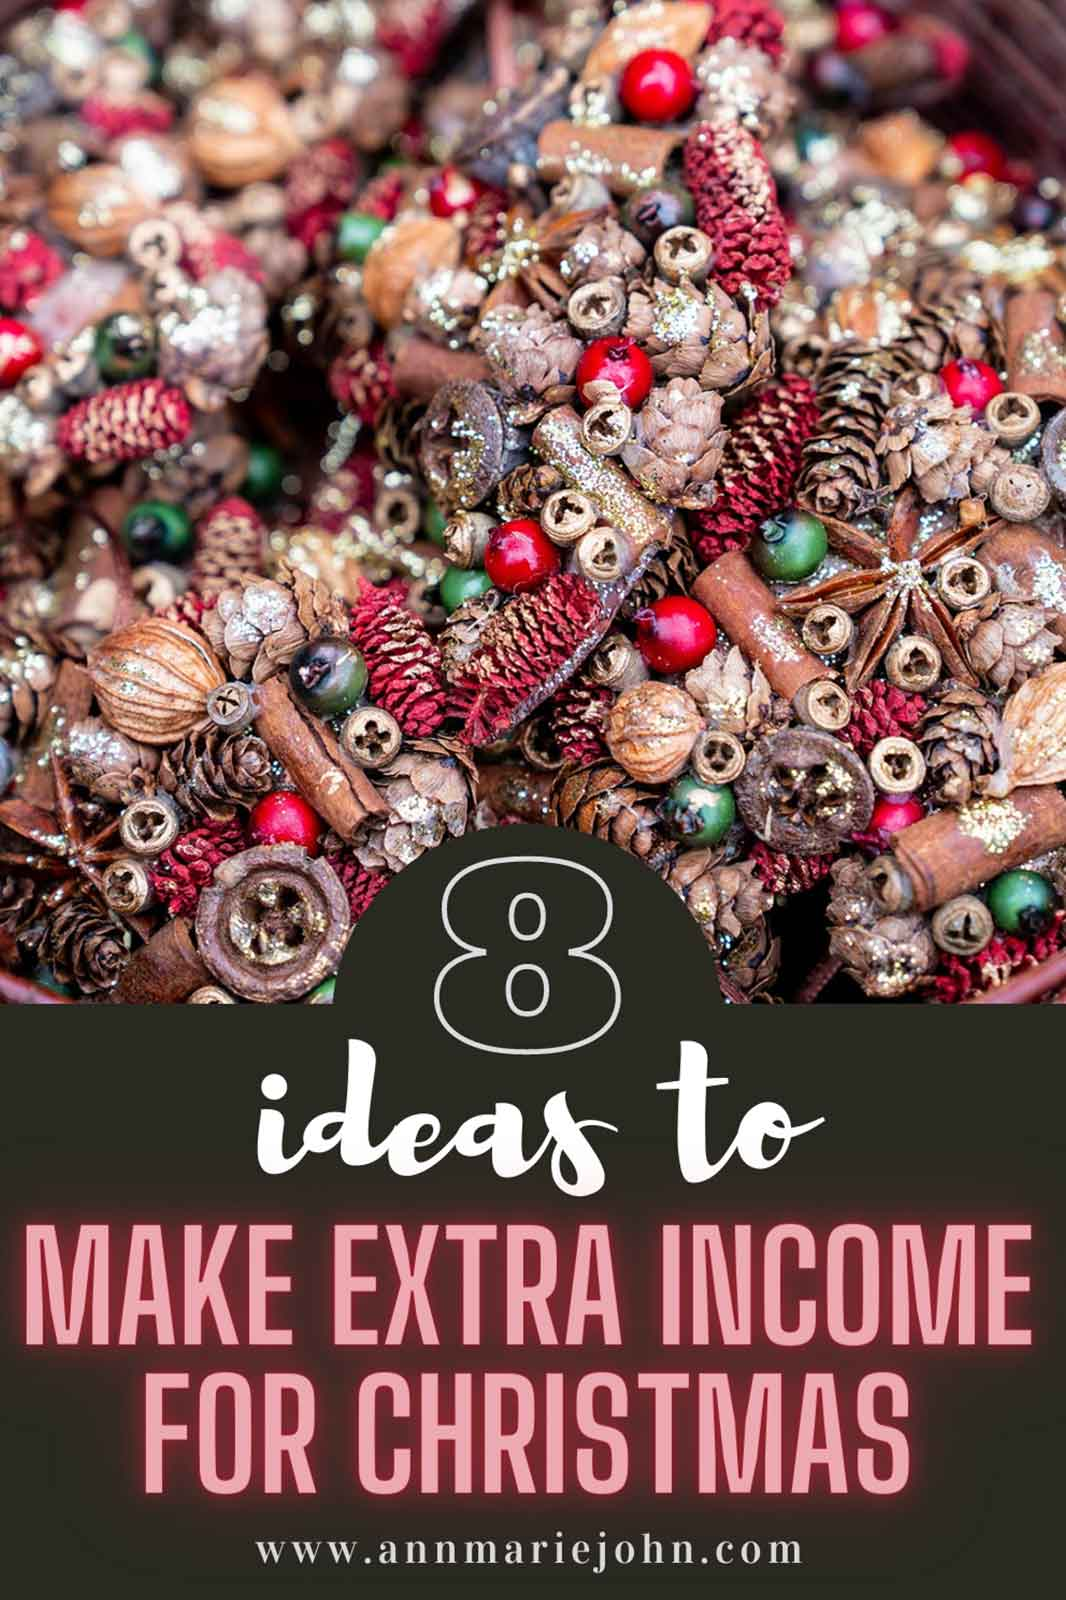 Online Business Ideas to Make Extra Income This Coming Christmas